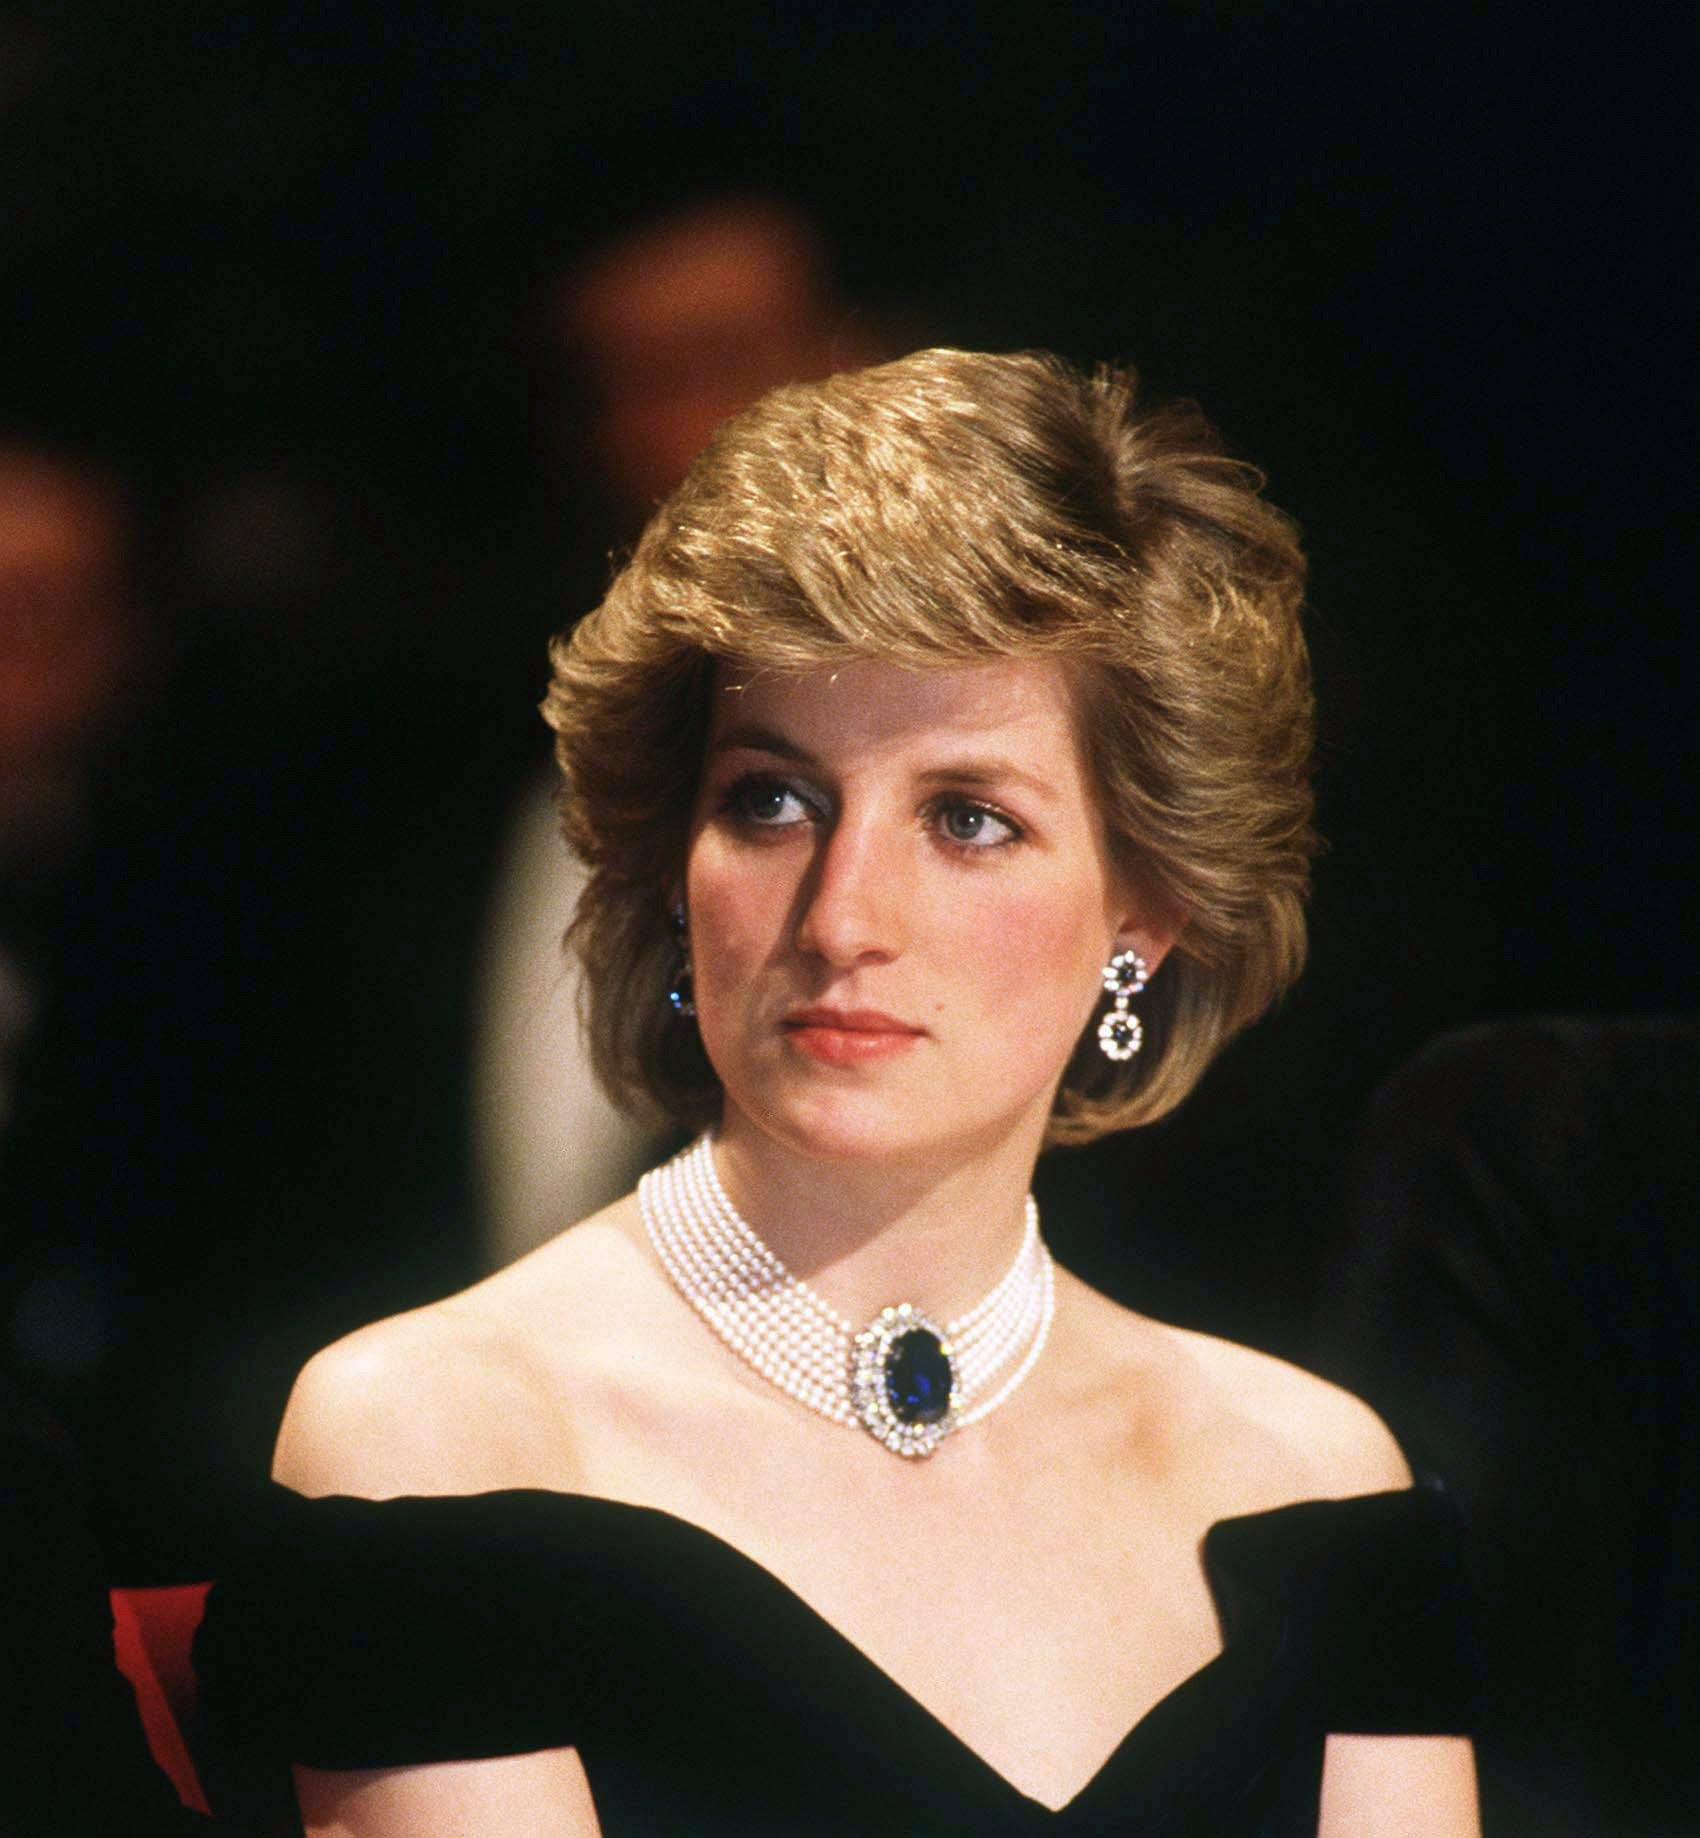 Diana, Princess of Wales, on April 16, 1986, in Vienna, Austria | Photo: Getty Images